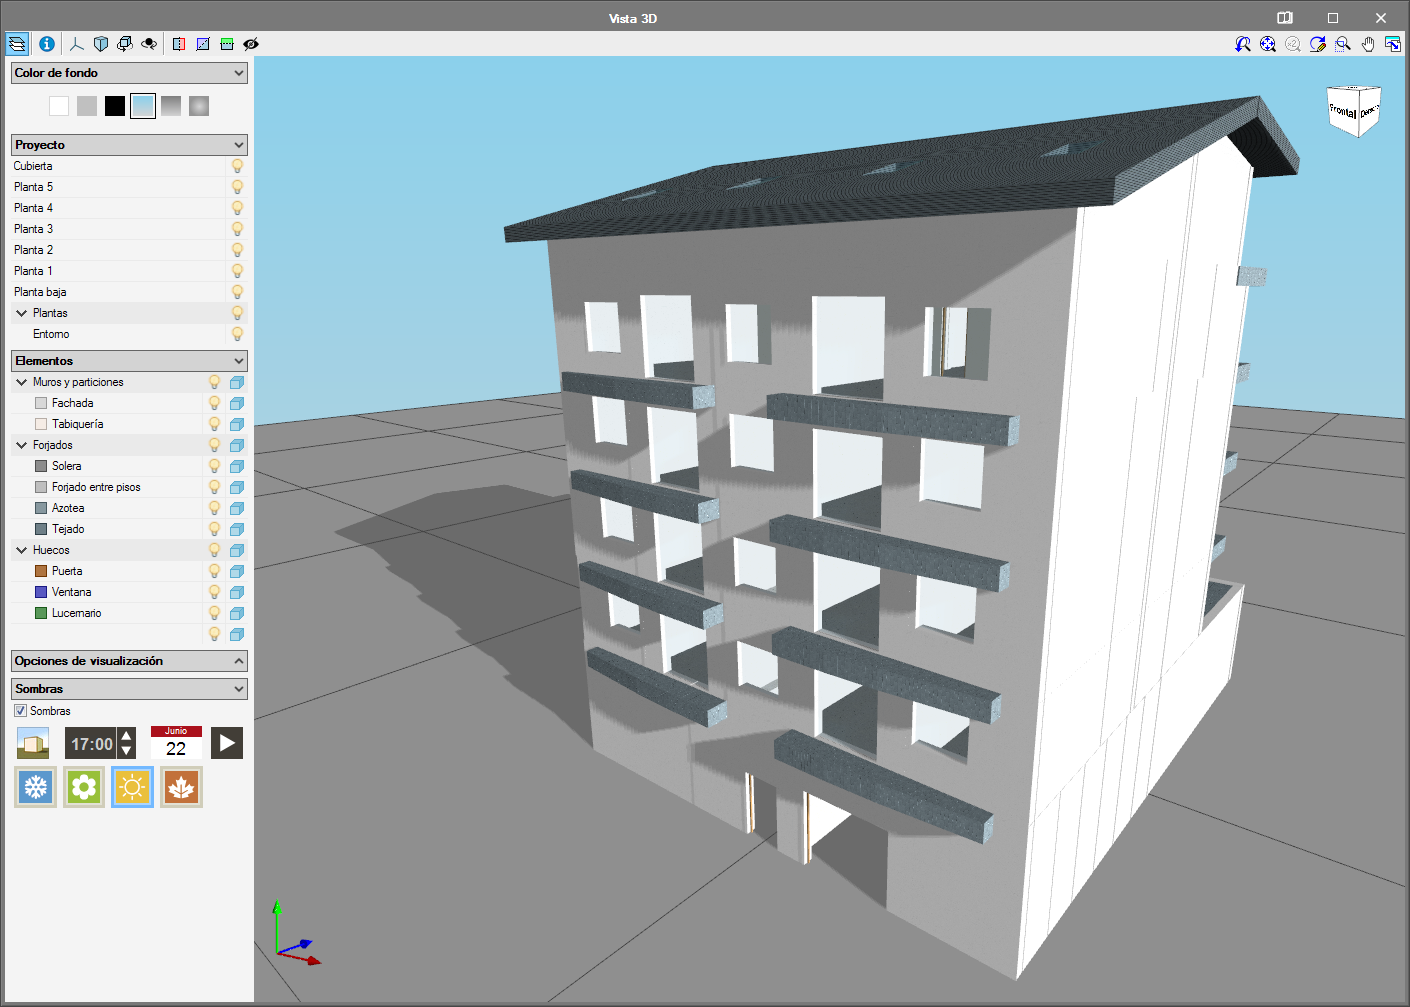 IFC Builder. View shadows on the 3D model of the building